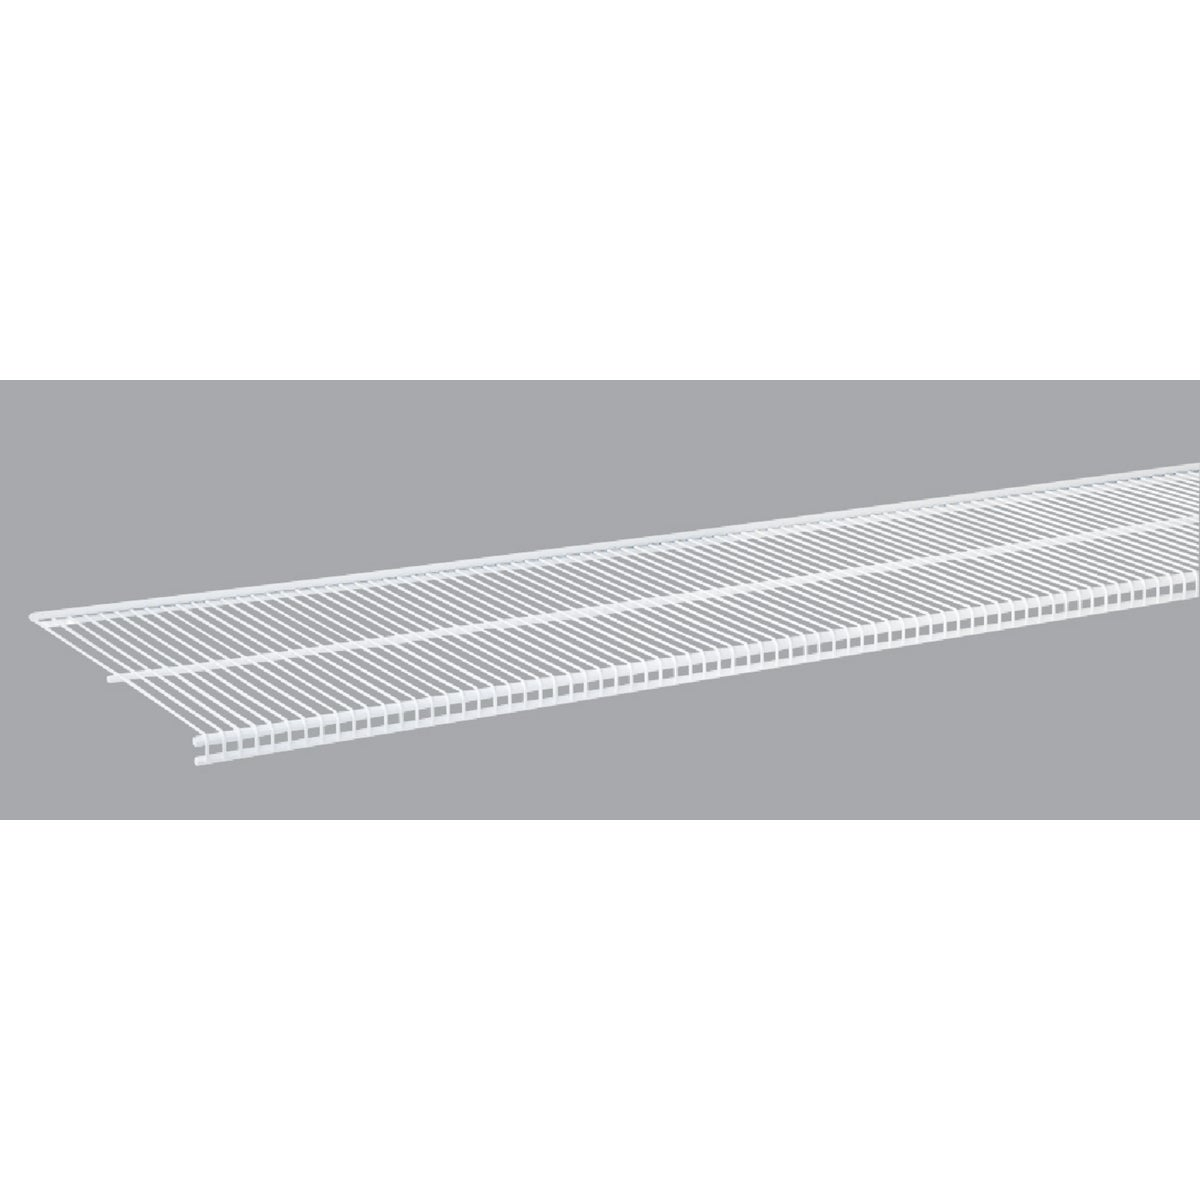 16X48 PROFILE SHELF - 1813164811 by Schulte Corp